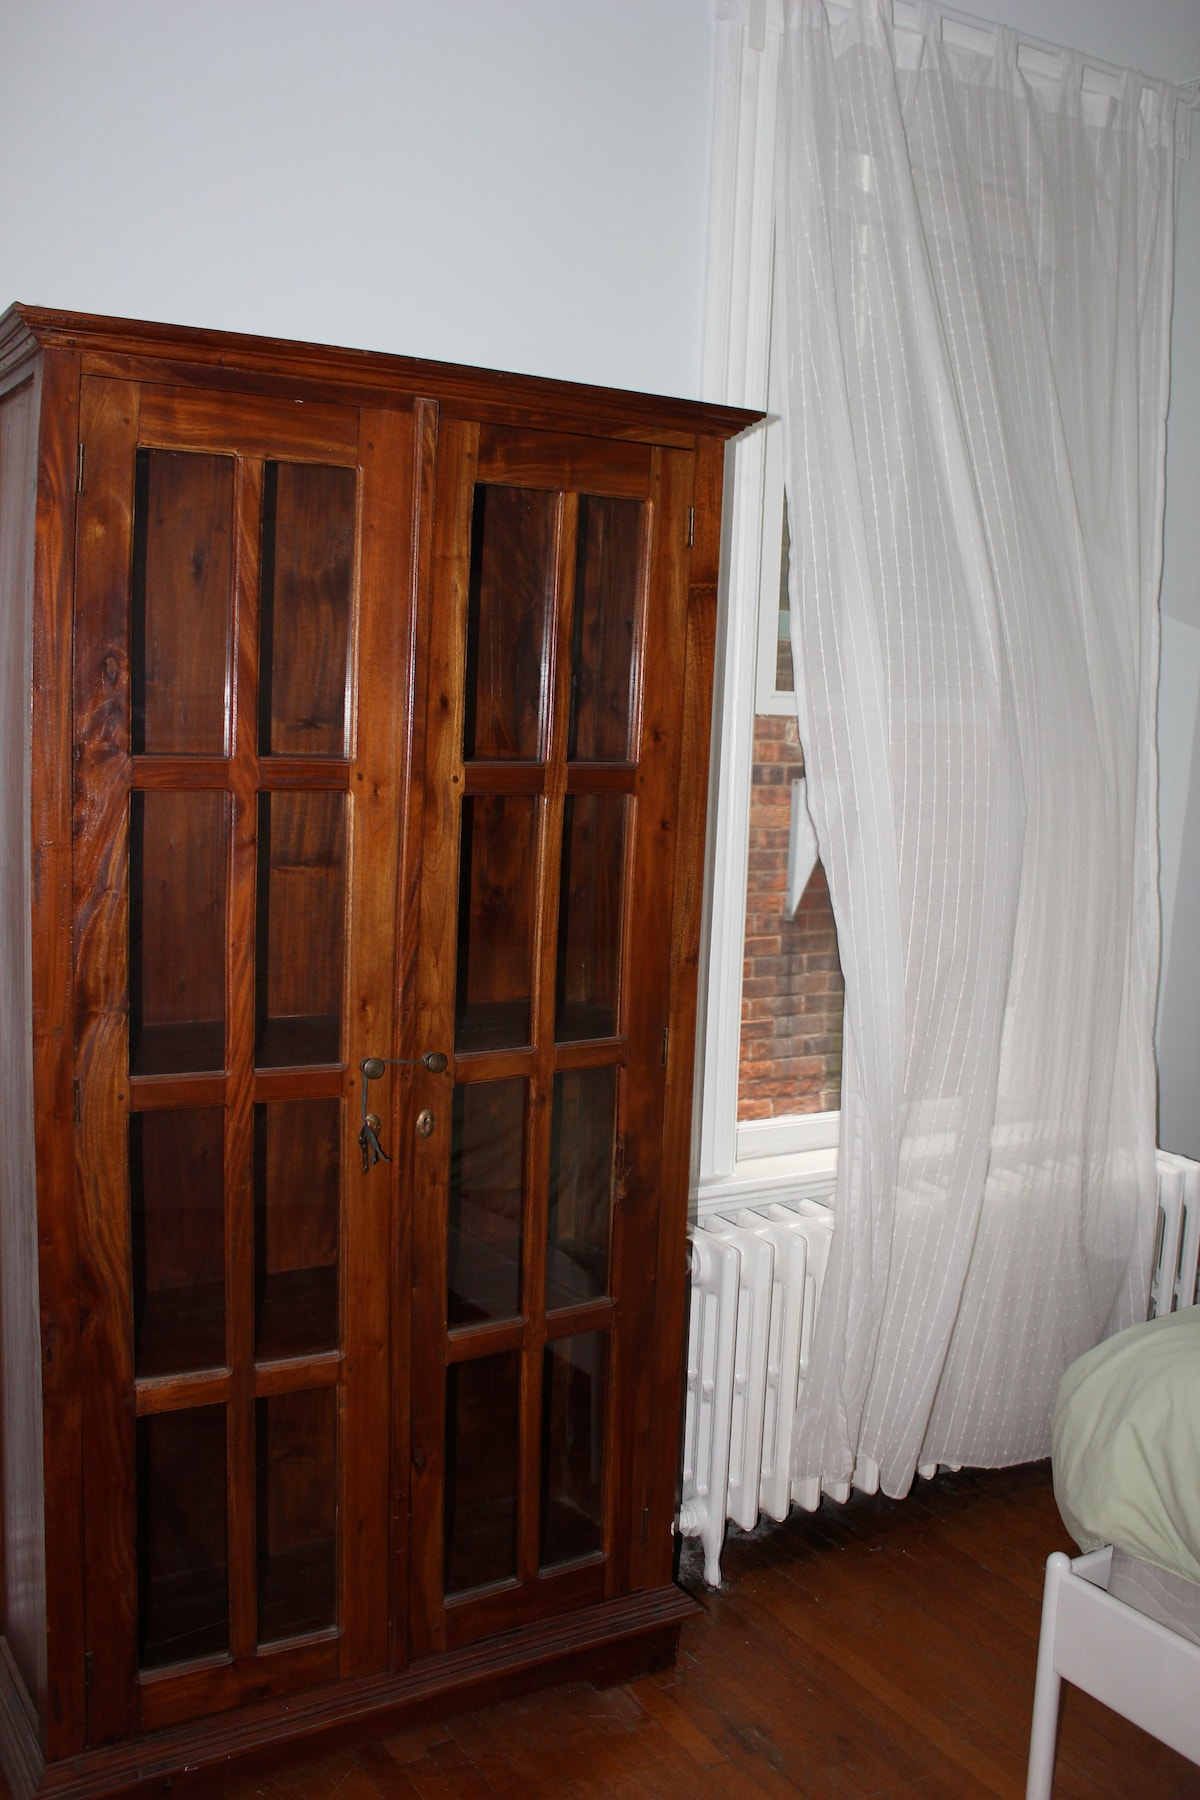 Armoire for your things, next to window - great view of brick wall next door - sun still shines in!